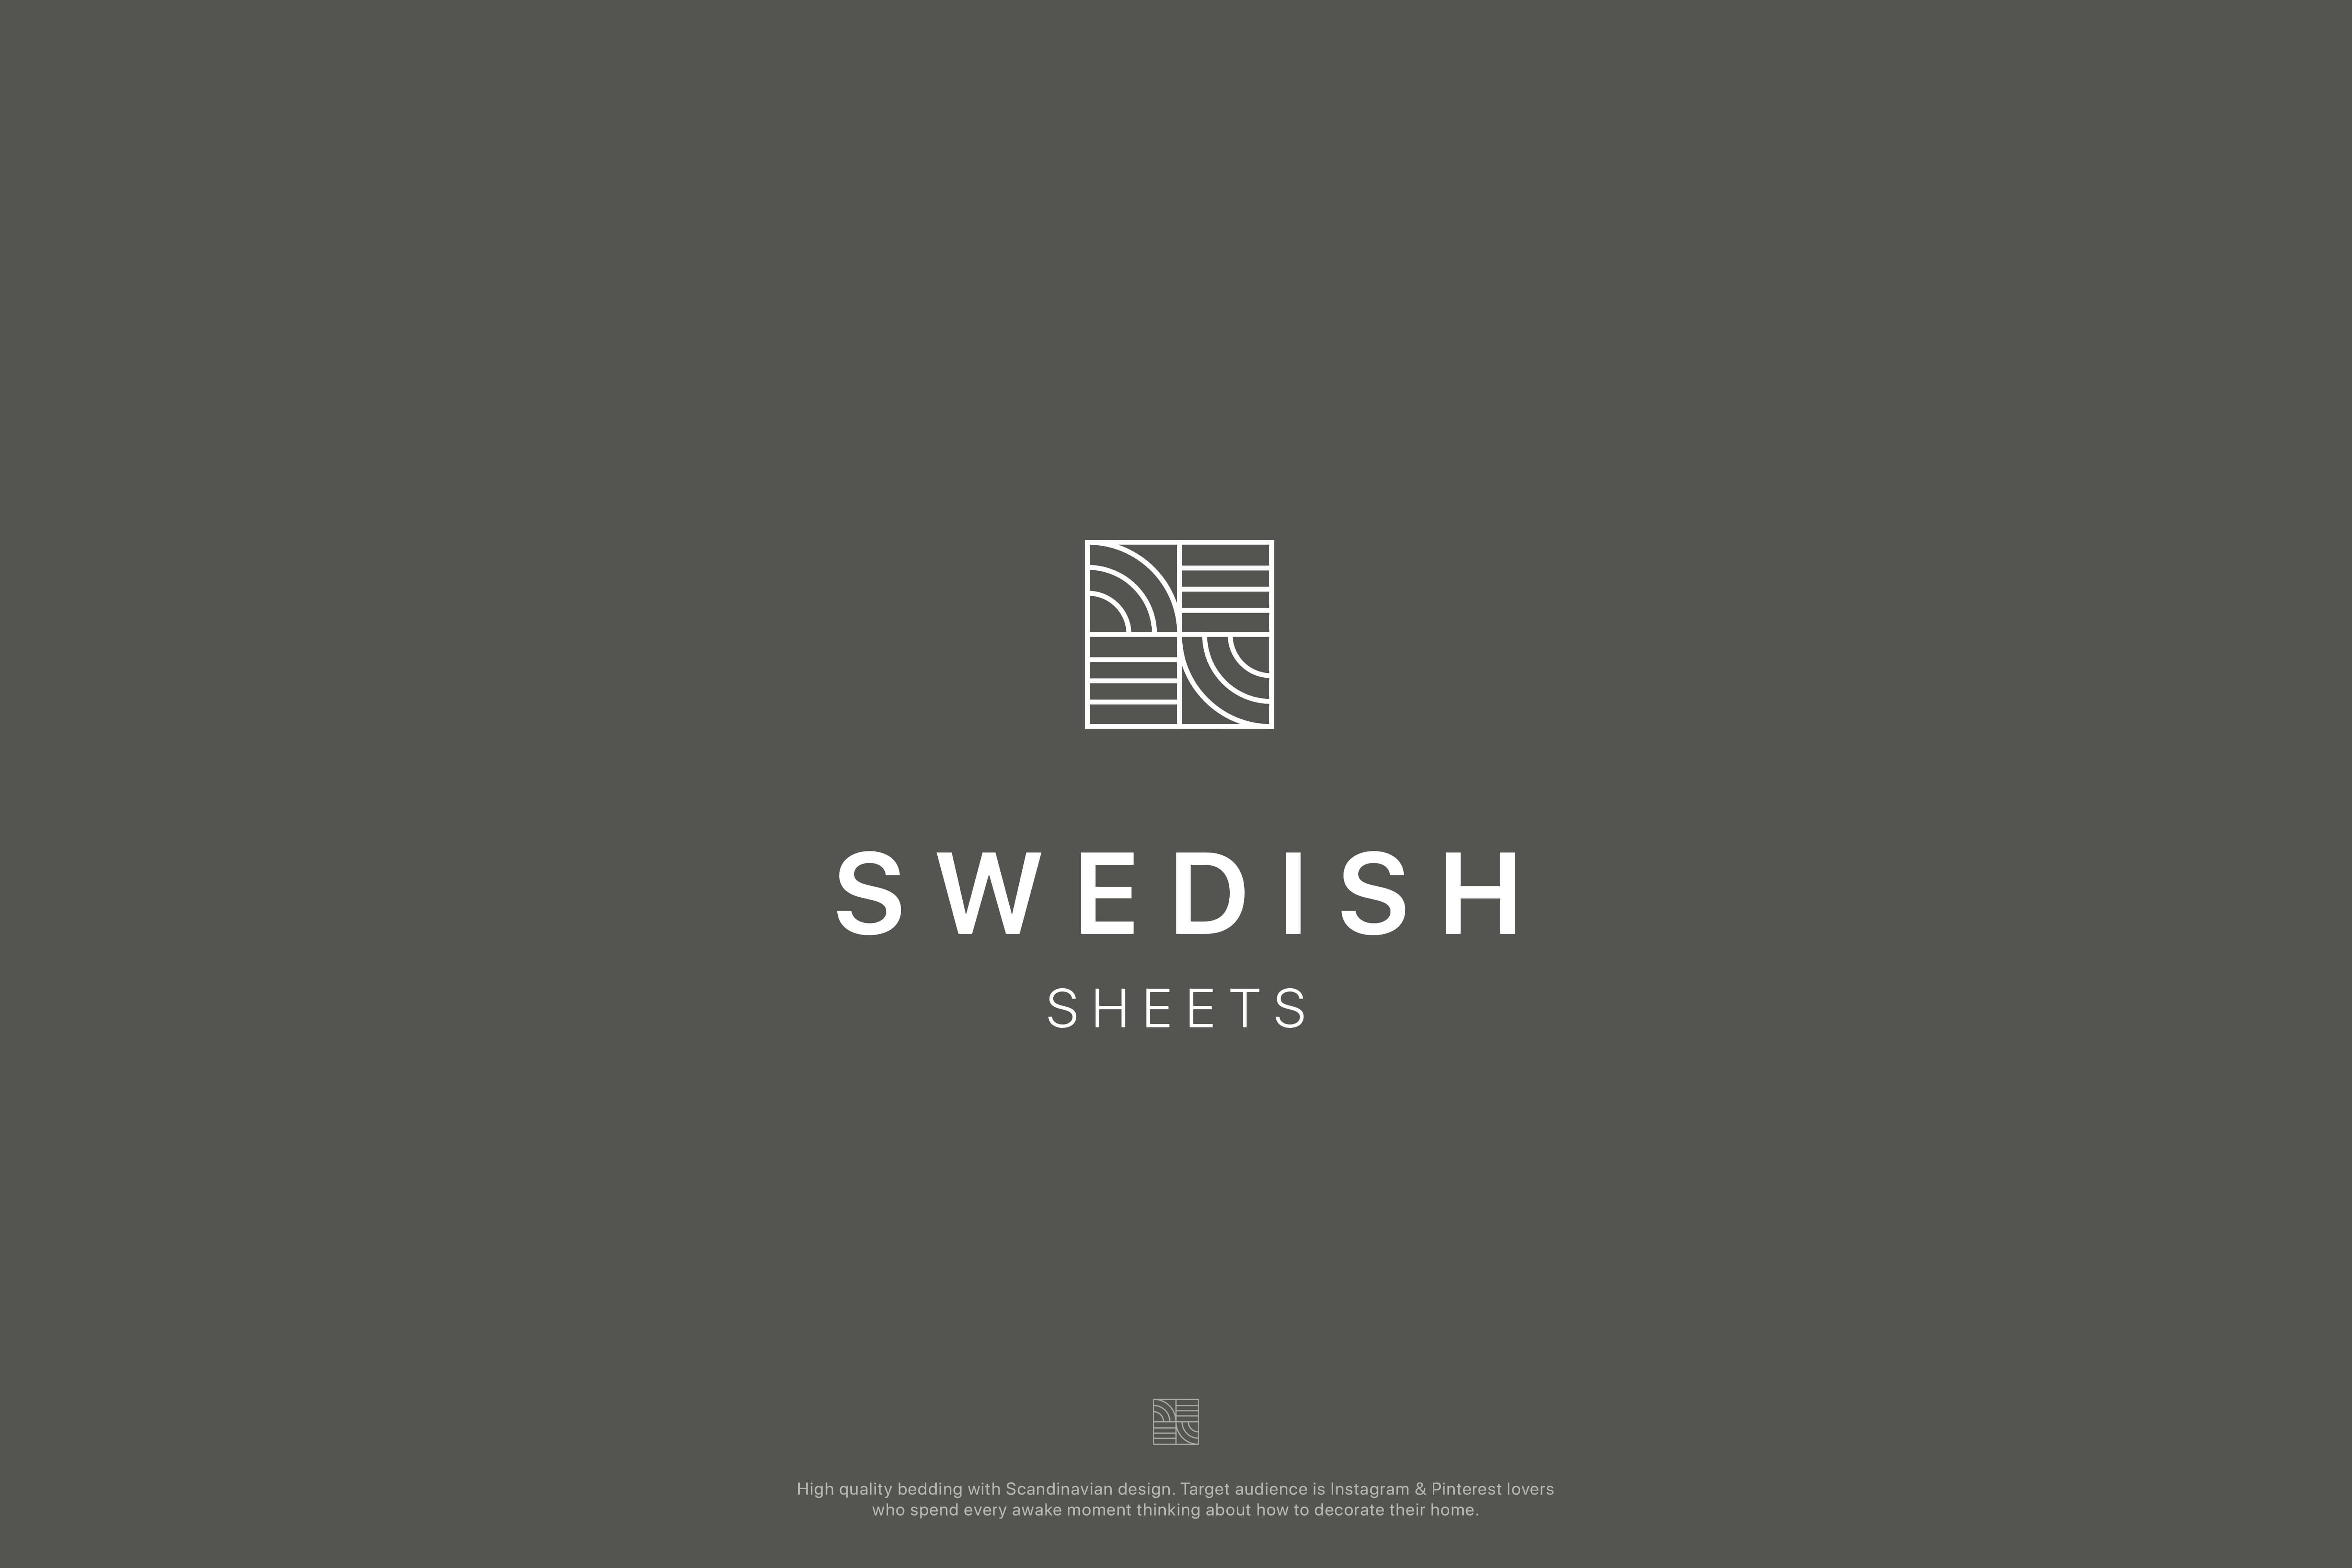 SWEDISH_SHEETS_logo